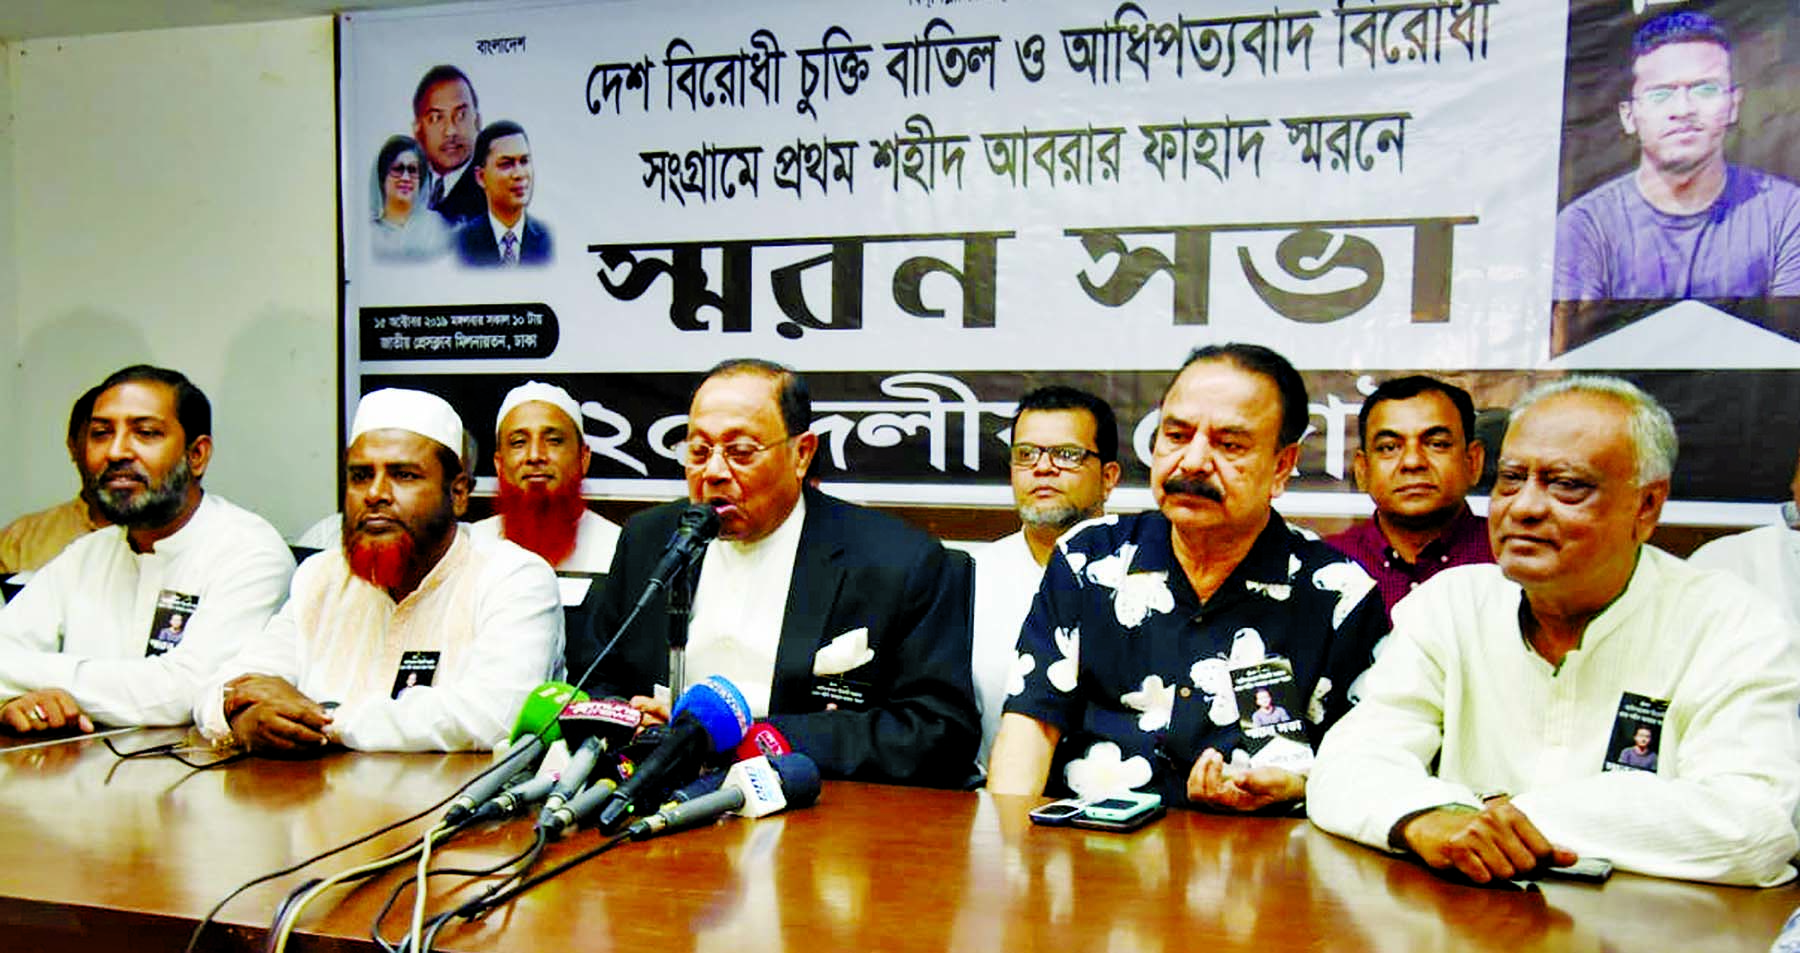 BNP Standing Committee Member Barrister Moudud Ahmed speaking at a memorial meeting on Abrar Fahad organised by 20-party alliance at the Jatiya Press Club on Tuesday demanding cancellation of anti-state agreements signed with India.